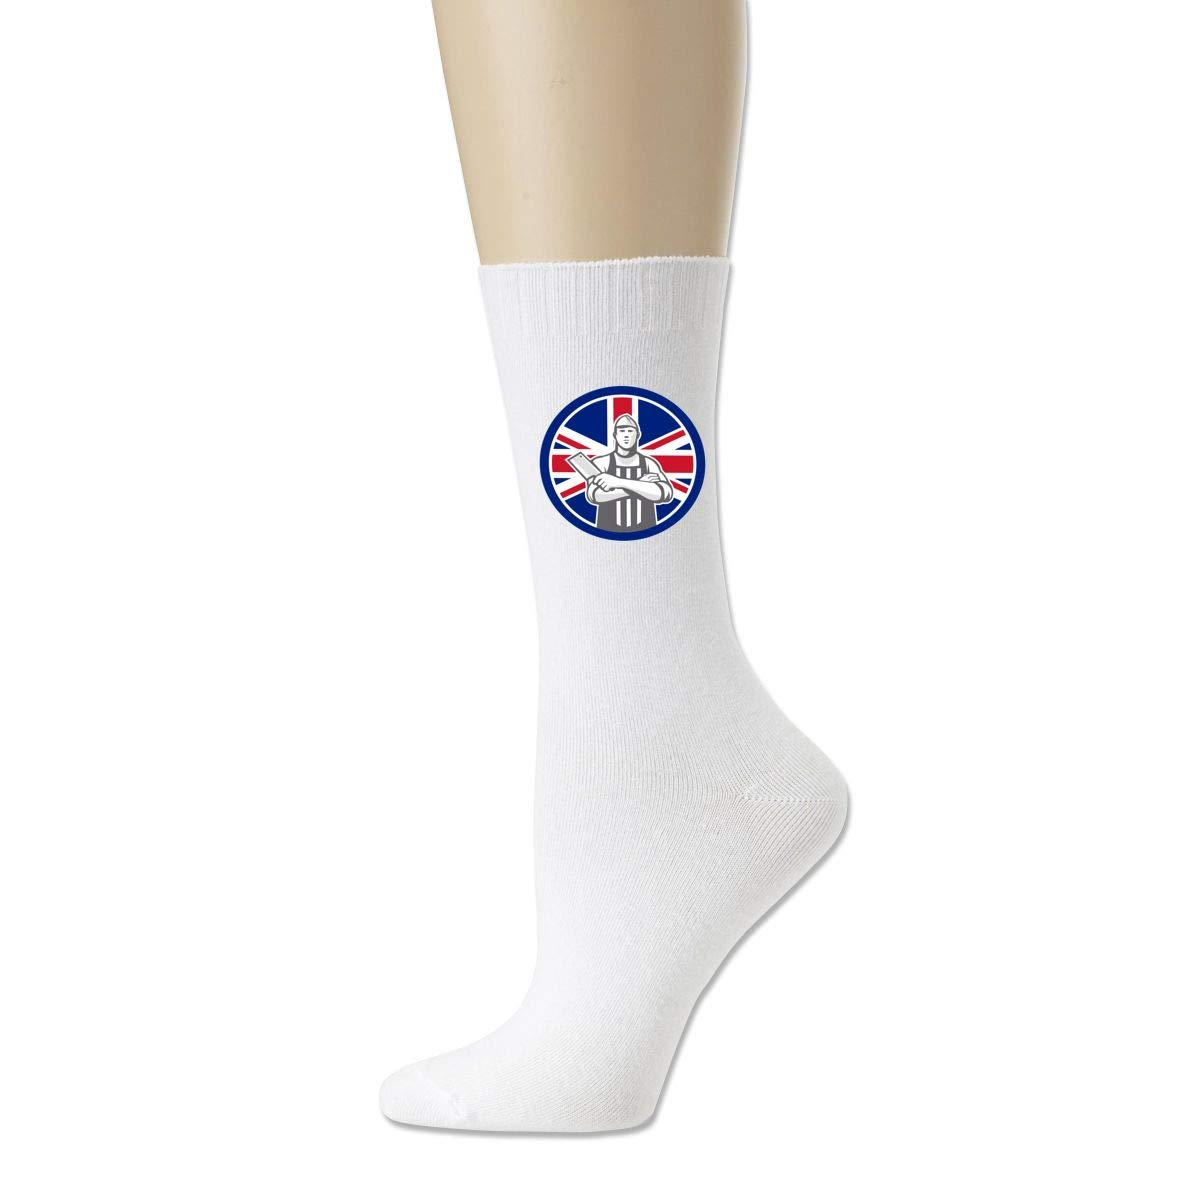 Rigg-socks British Butcher Front Union Jack Flag Icon Mens Comfortable Sport Socks Black